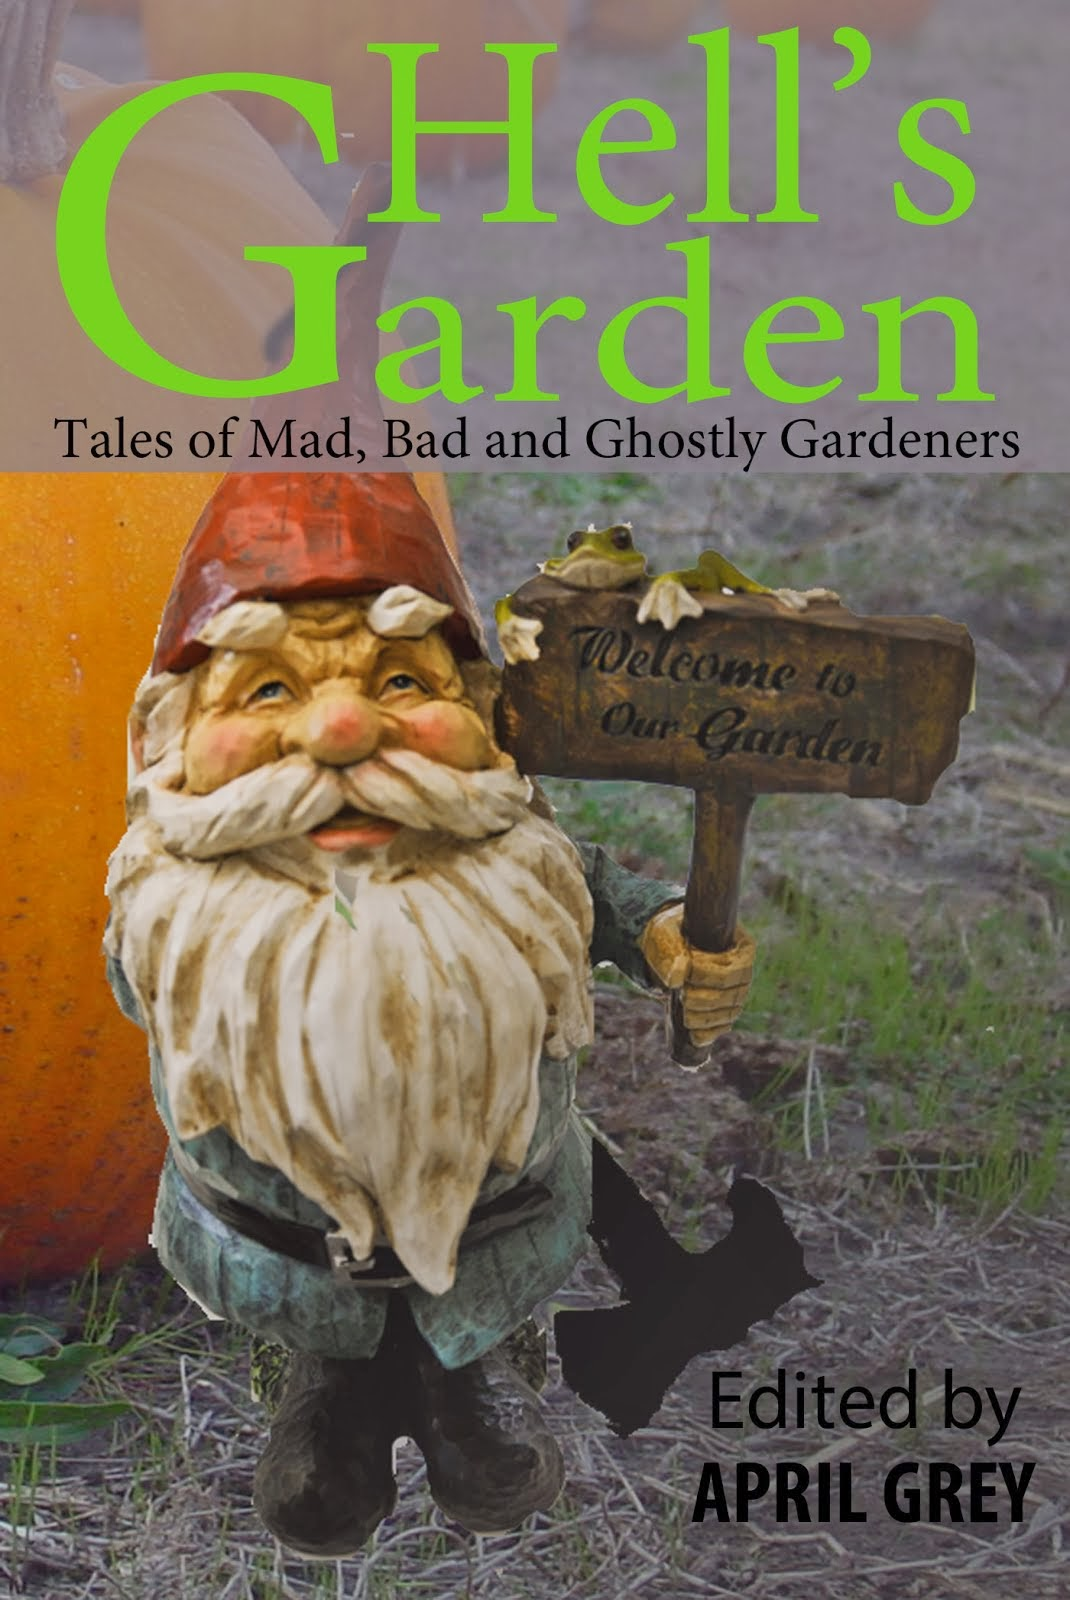 Go here for discounted and free April Grey fiction